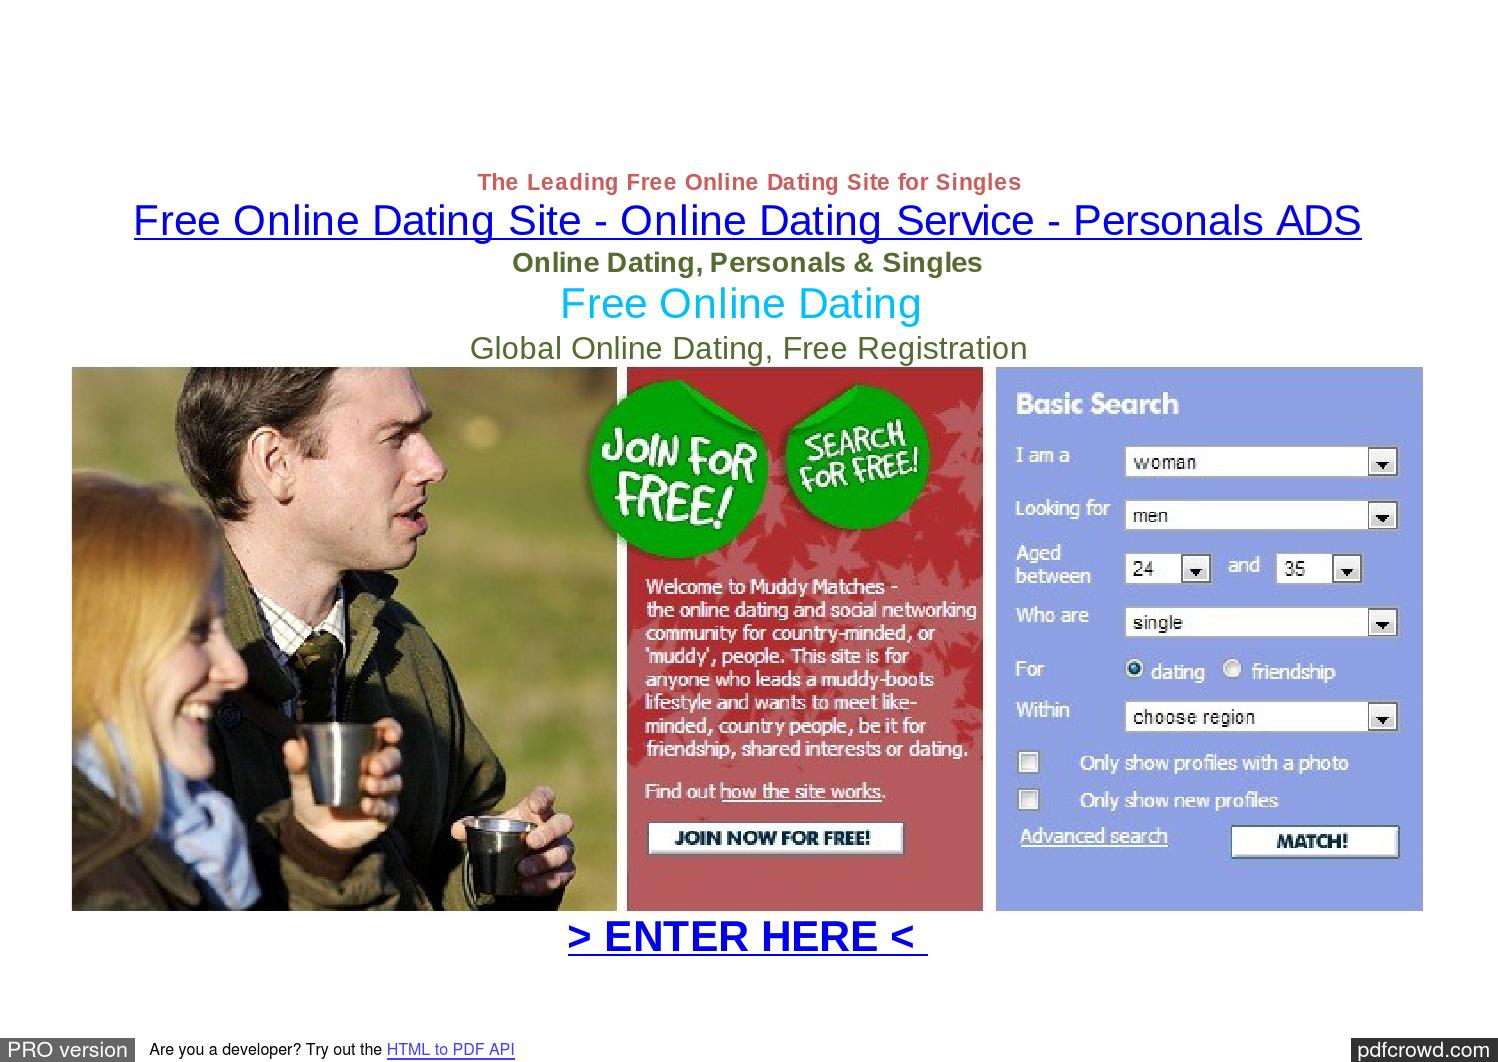 How to use an online dating site for free